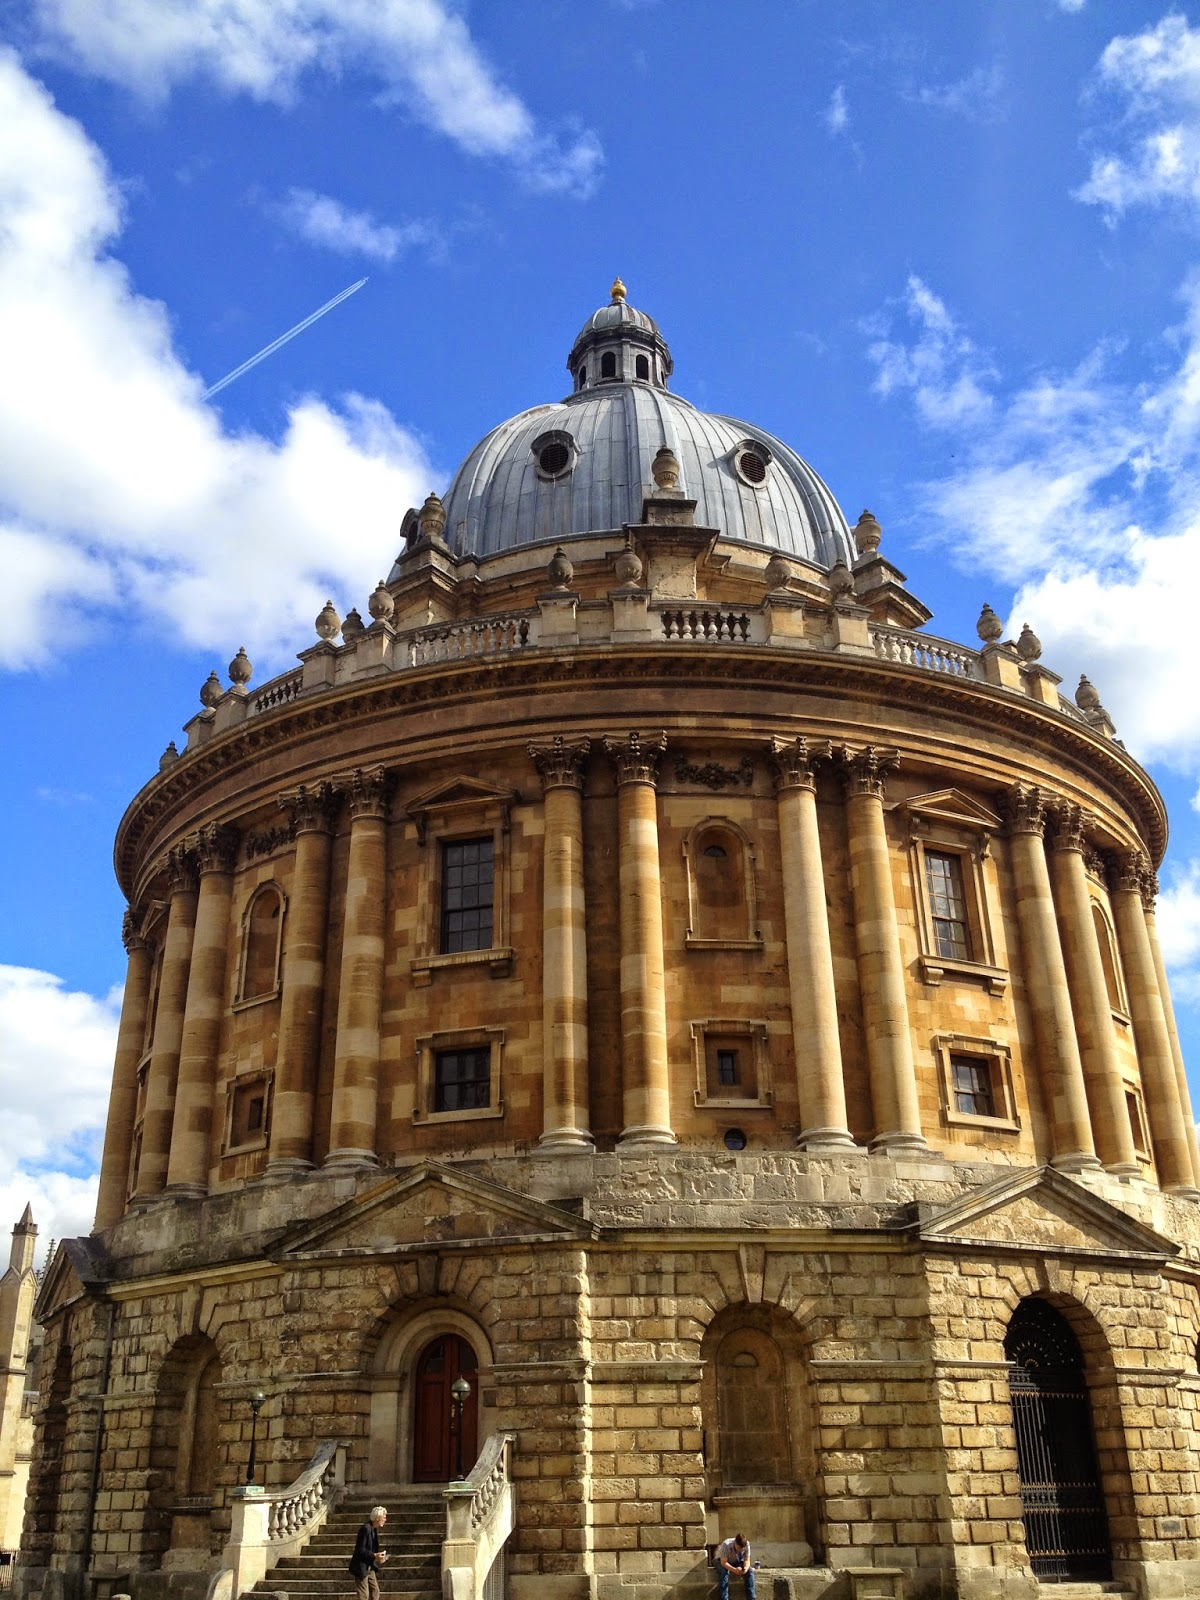 Radcliffe Camera Oxford (photo credit: http://researchandramblings.blogspot.com/)